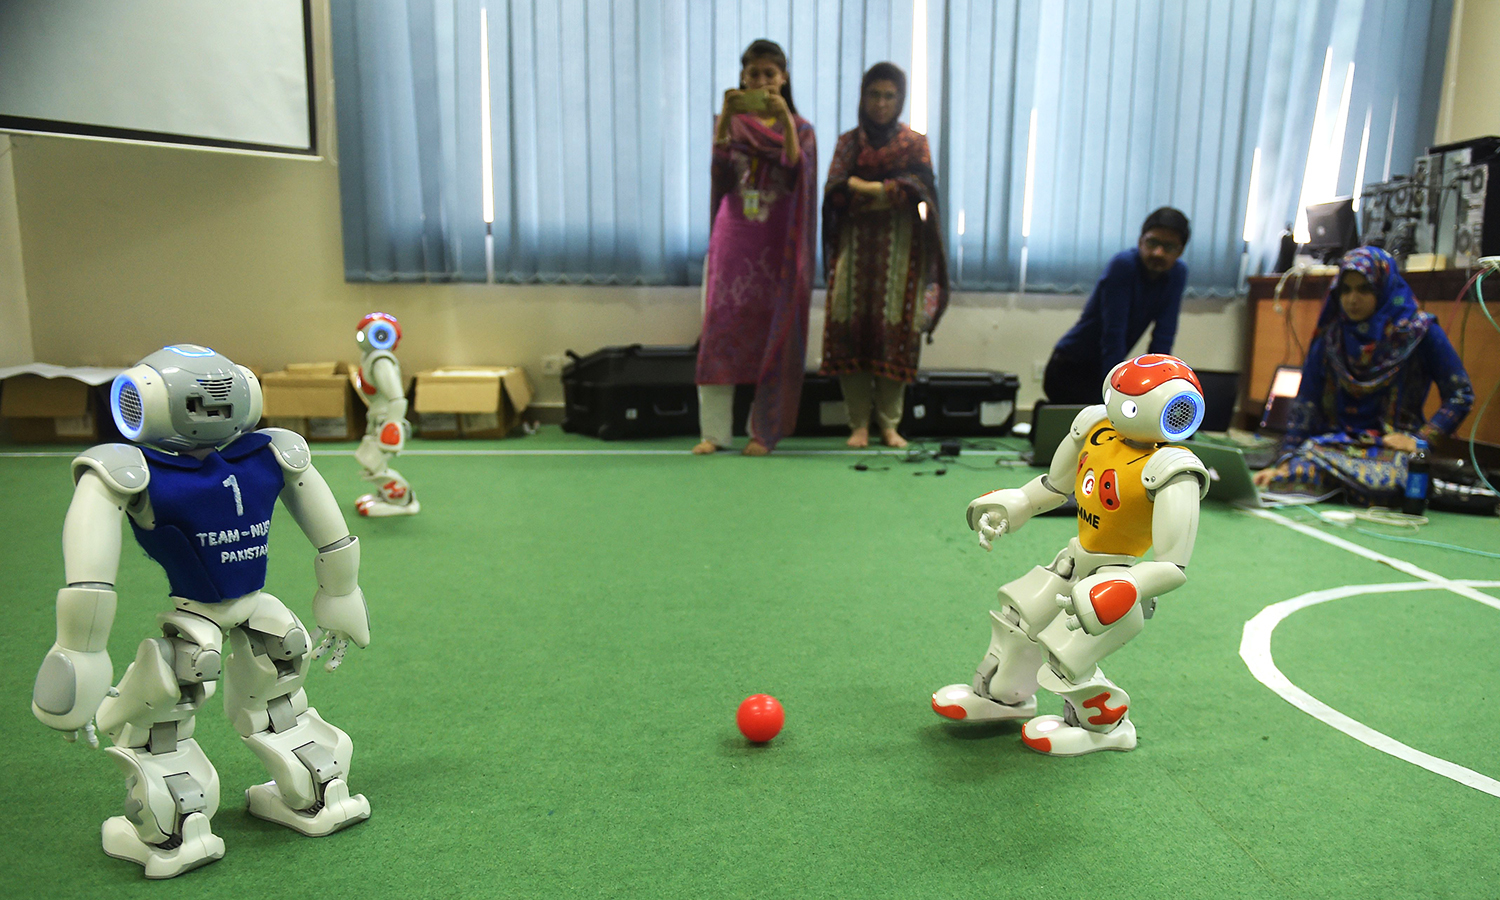 Students and team members of Robotics and Intelligence Systems Engineering (RISE) watch as their robot football players take part in a match at the engineering department of NUST in Islamabad. — AFP